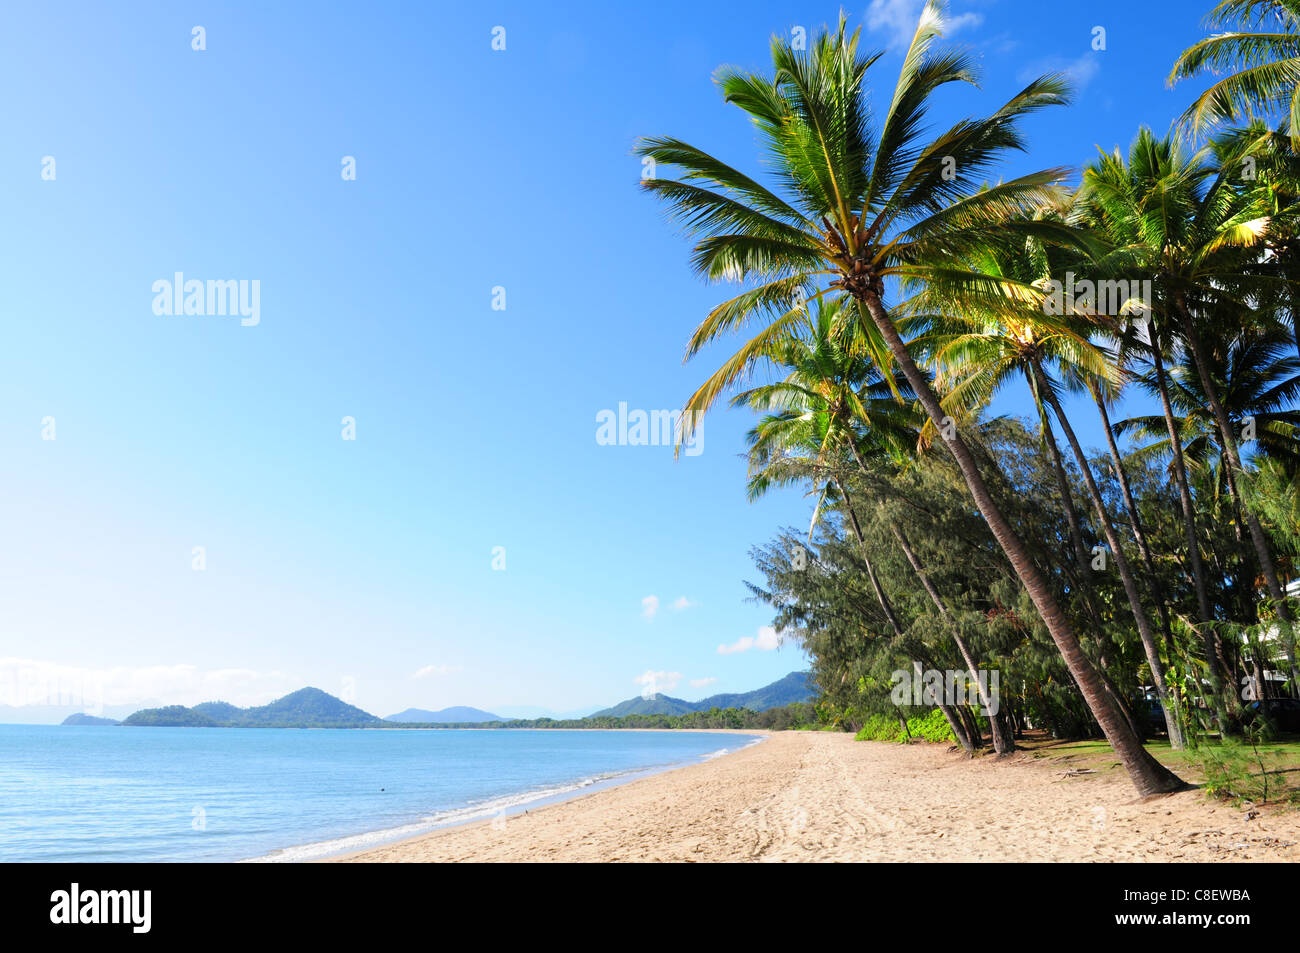 Beautiful green palm trees at tropical beach Palm Cove in Queensland, Australia Stock Photo